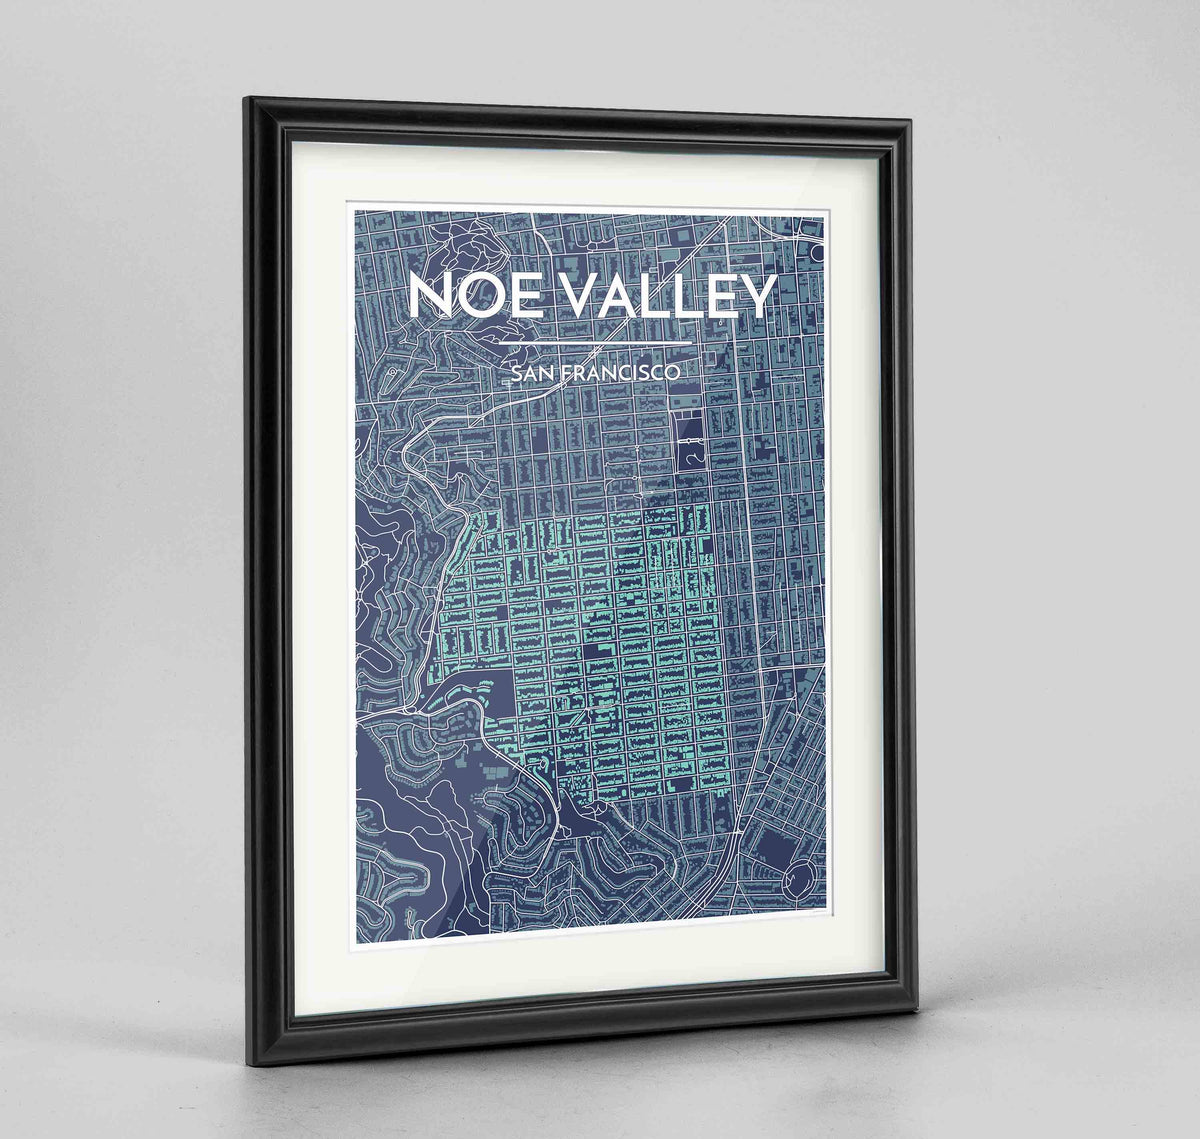 "Framed Noe Valley, San Francisco Map Art 24x36"" Traditional Black frame Point Two Design Group"